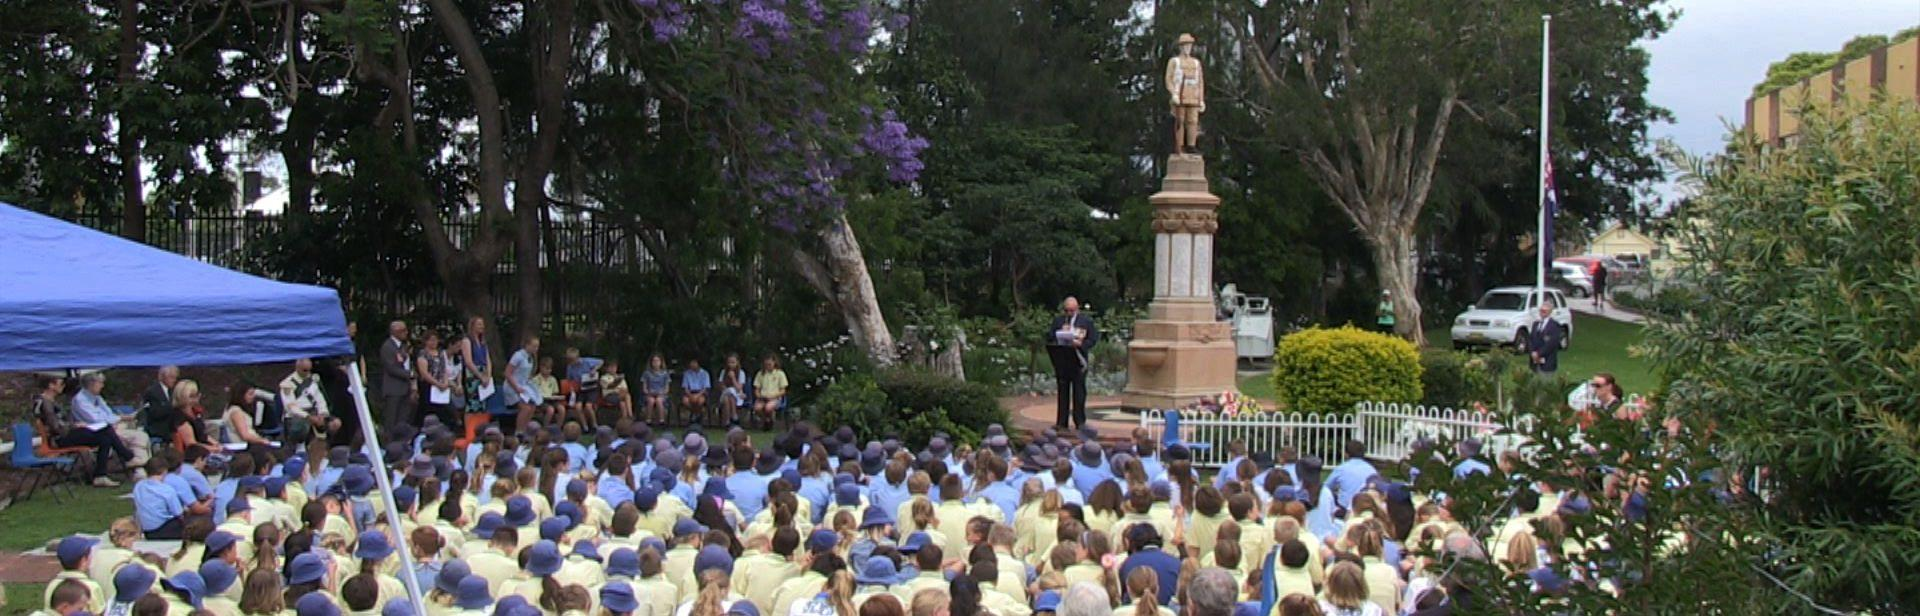 Thirroul Remembrance Ceremony